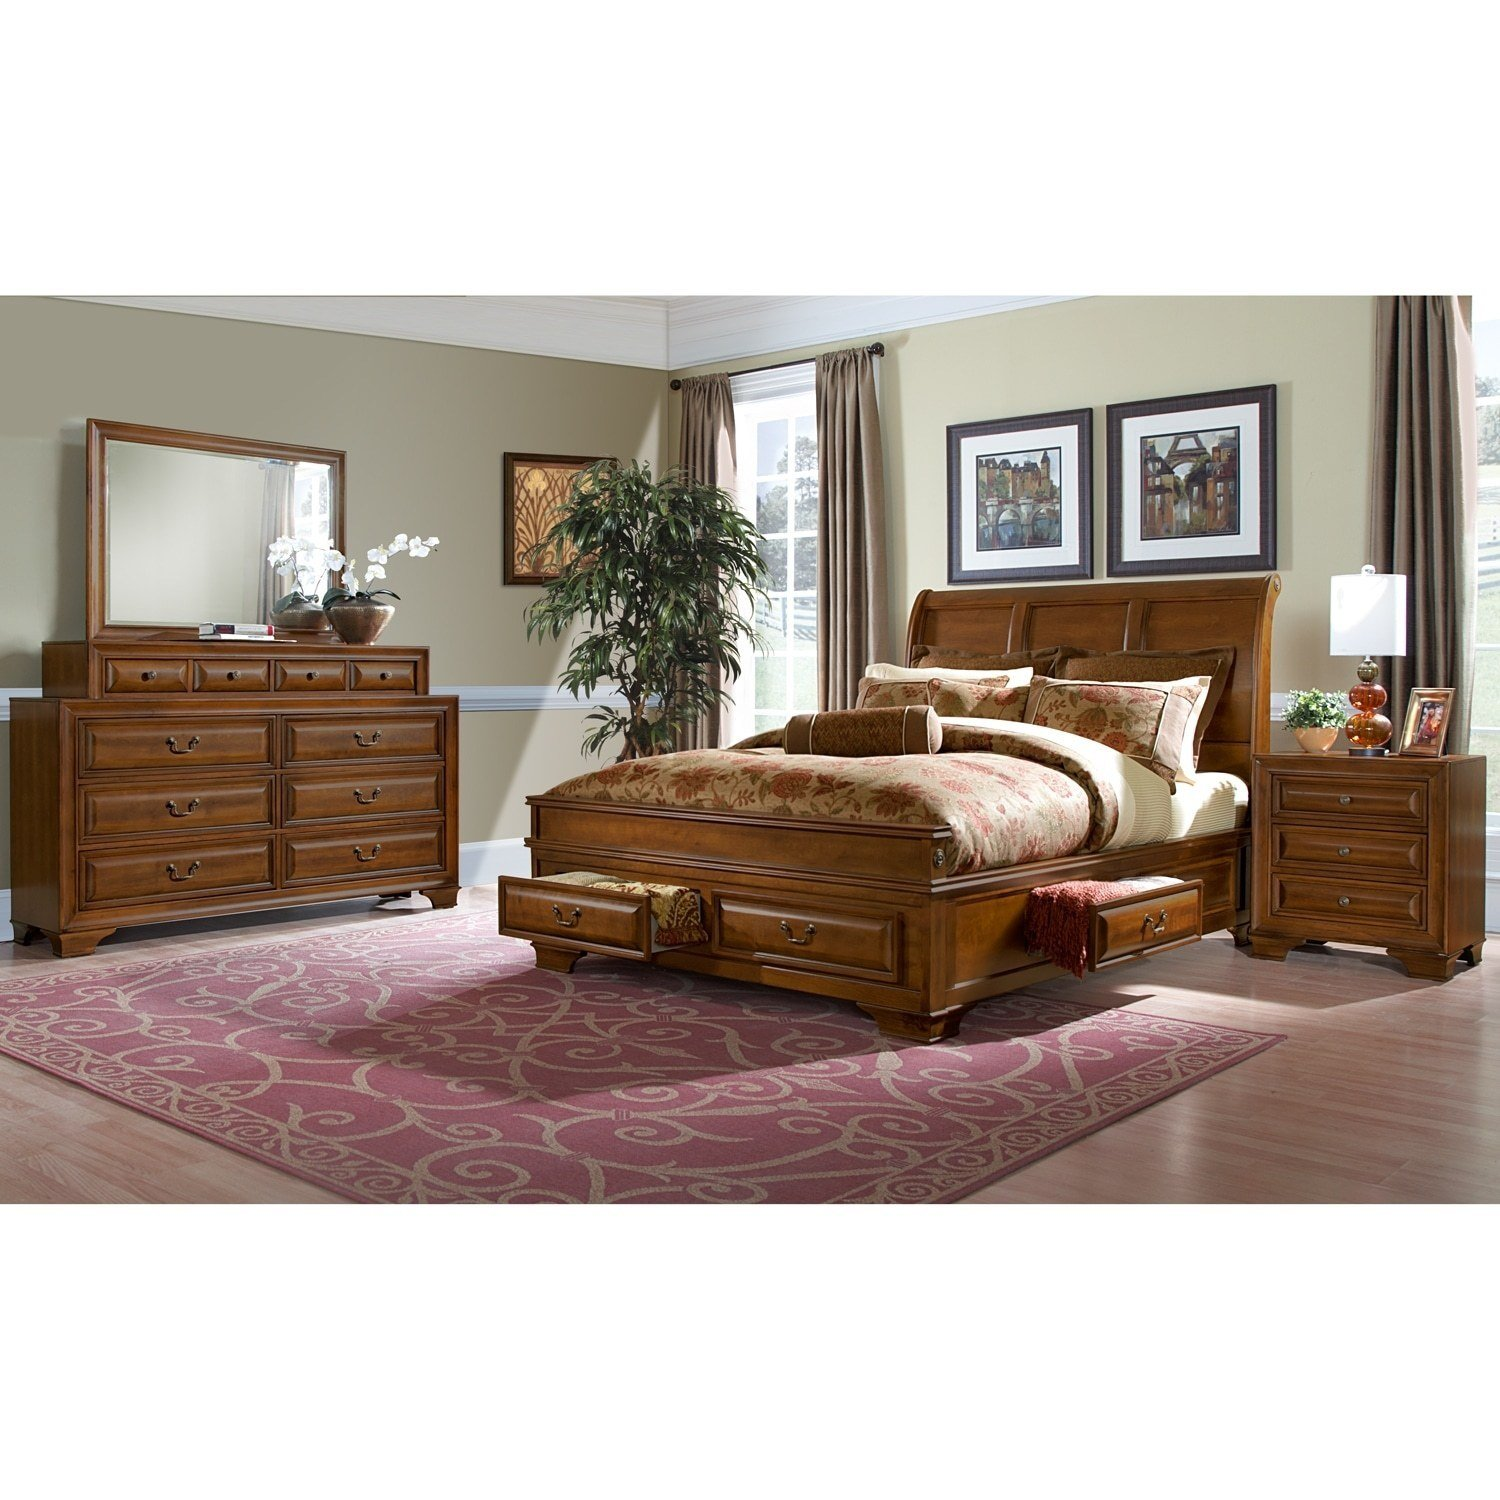 Best On Sale Furniture Value City Furniture With Pictures